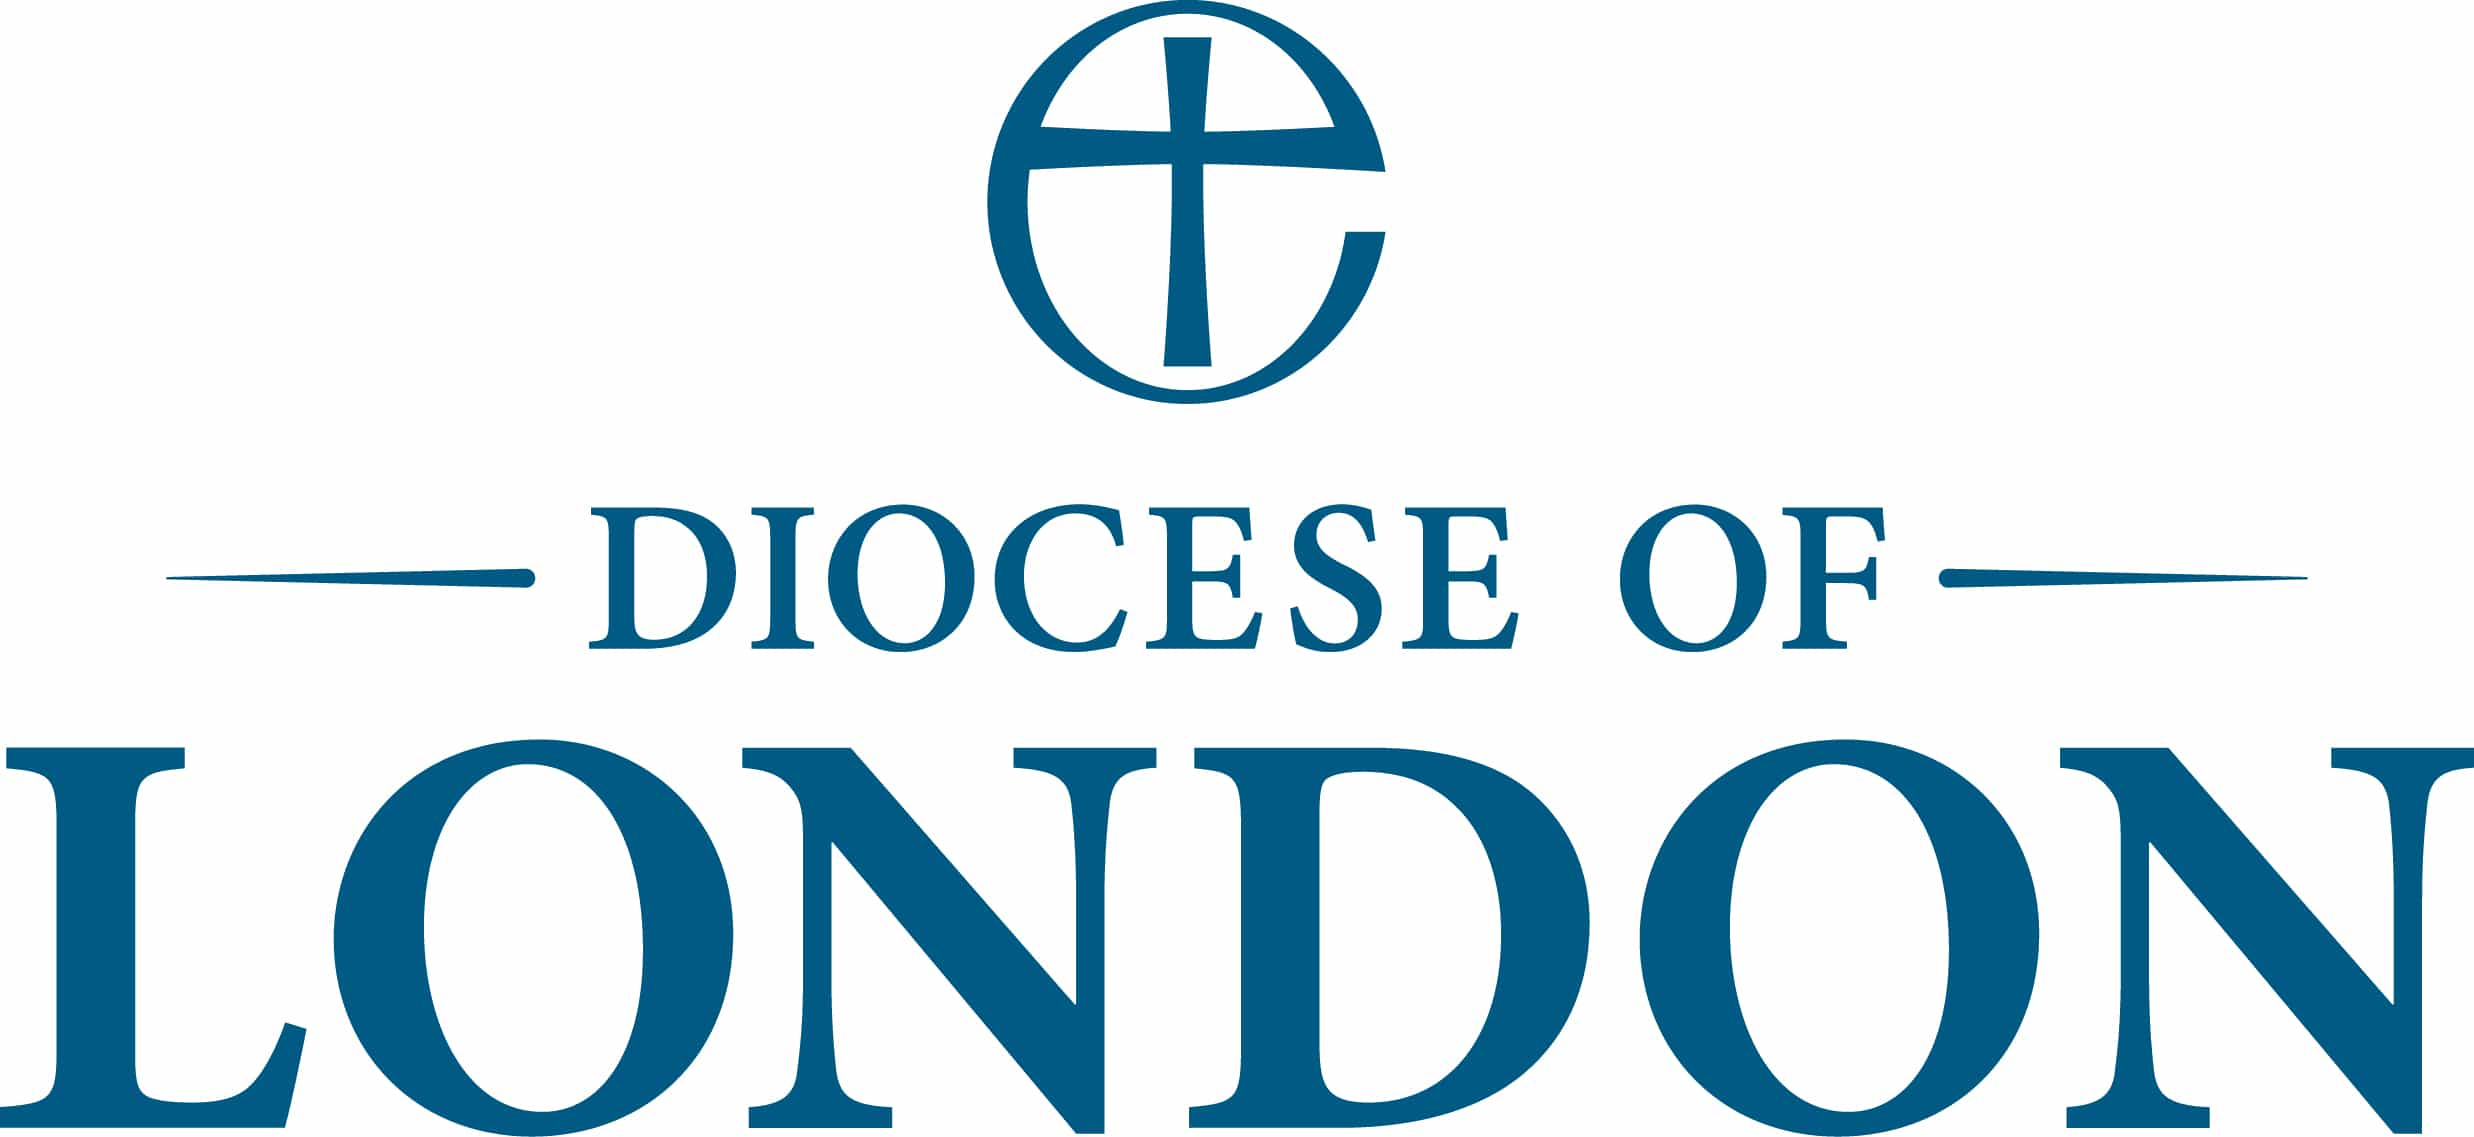 Diocese-of-London-RGB-Blue.jpg